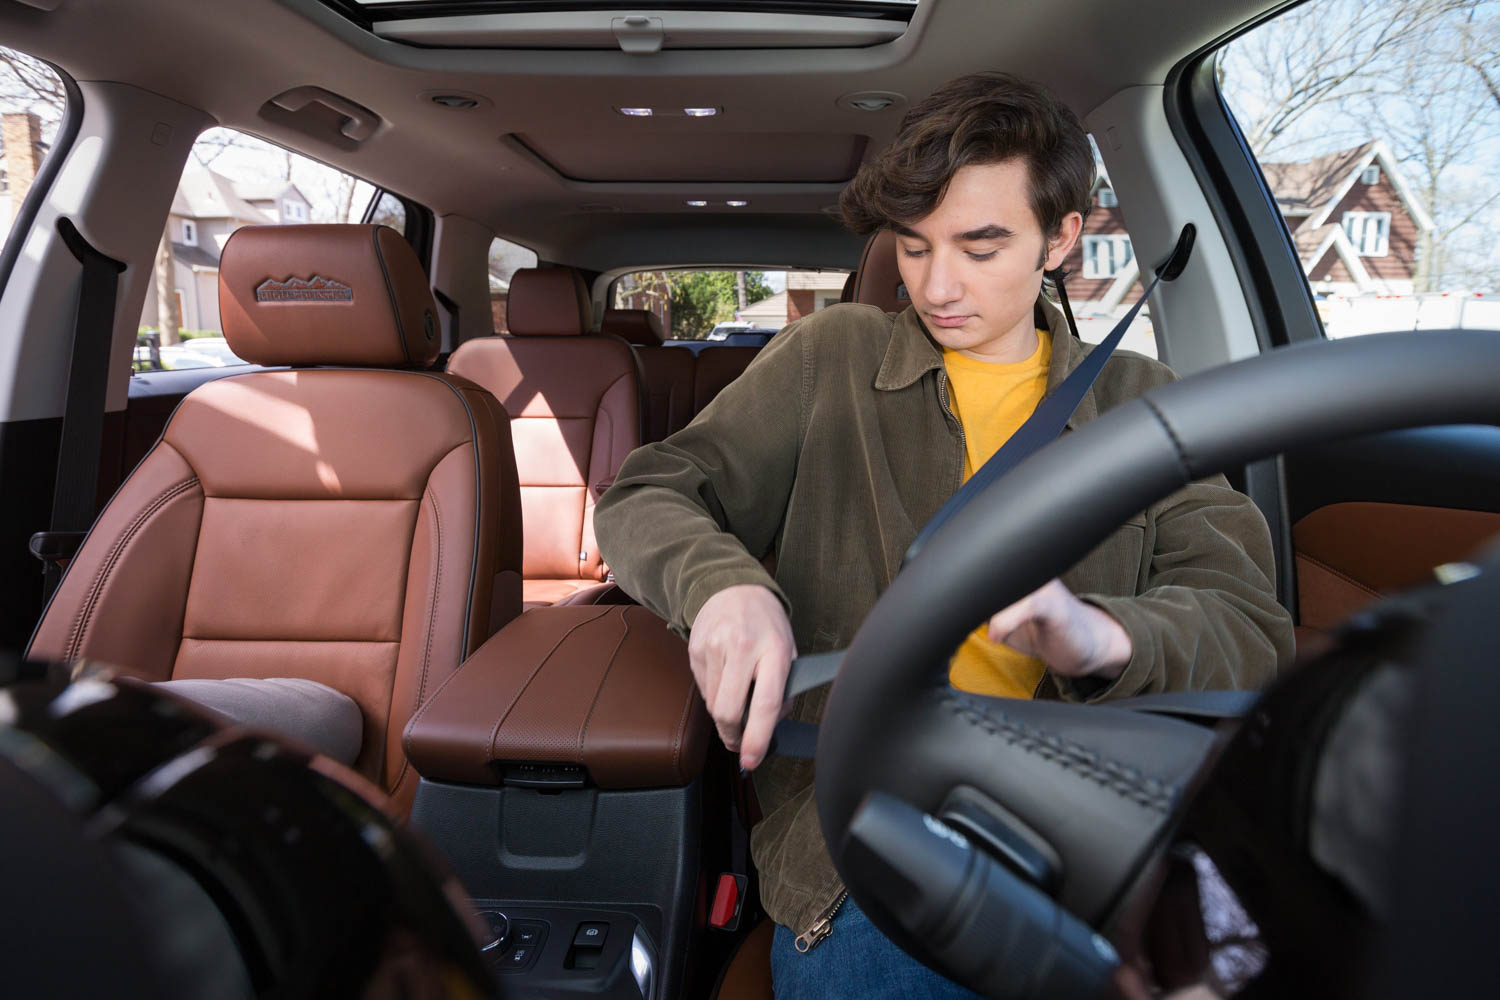 GM Teen Driver system